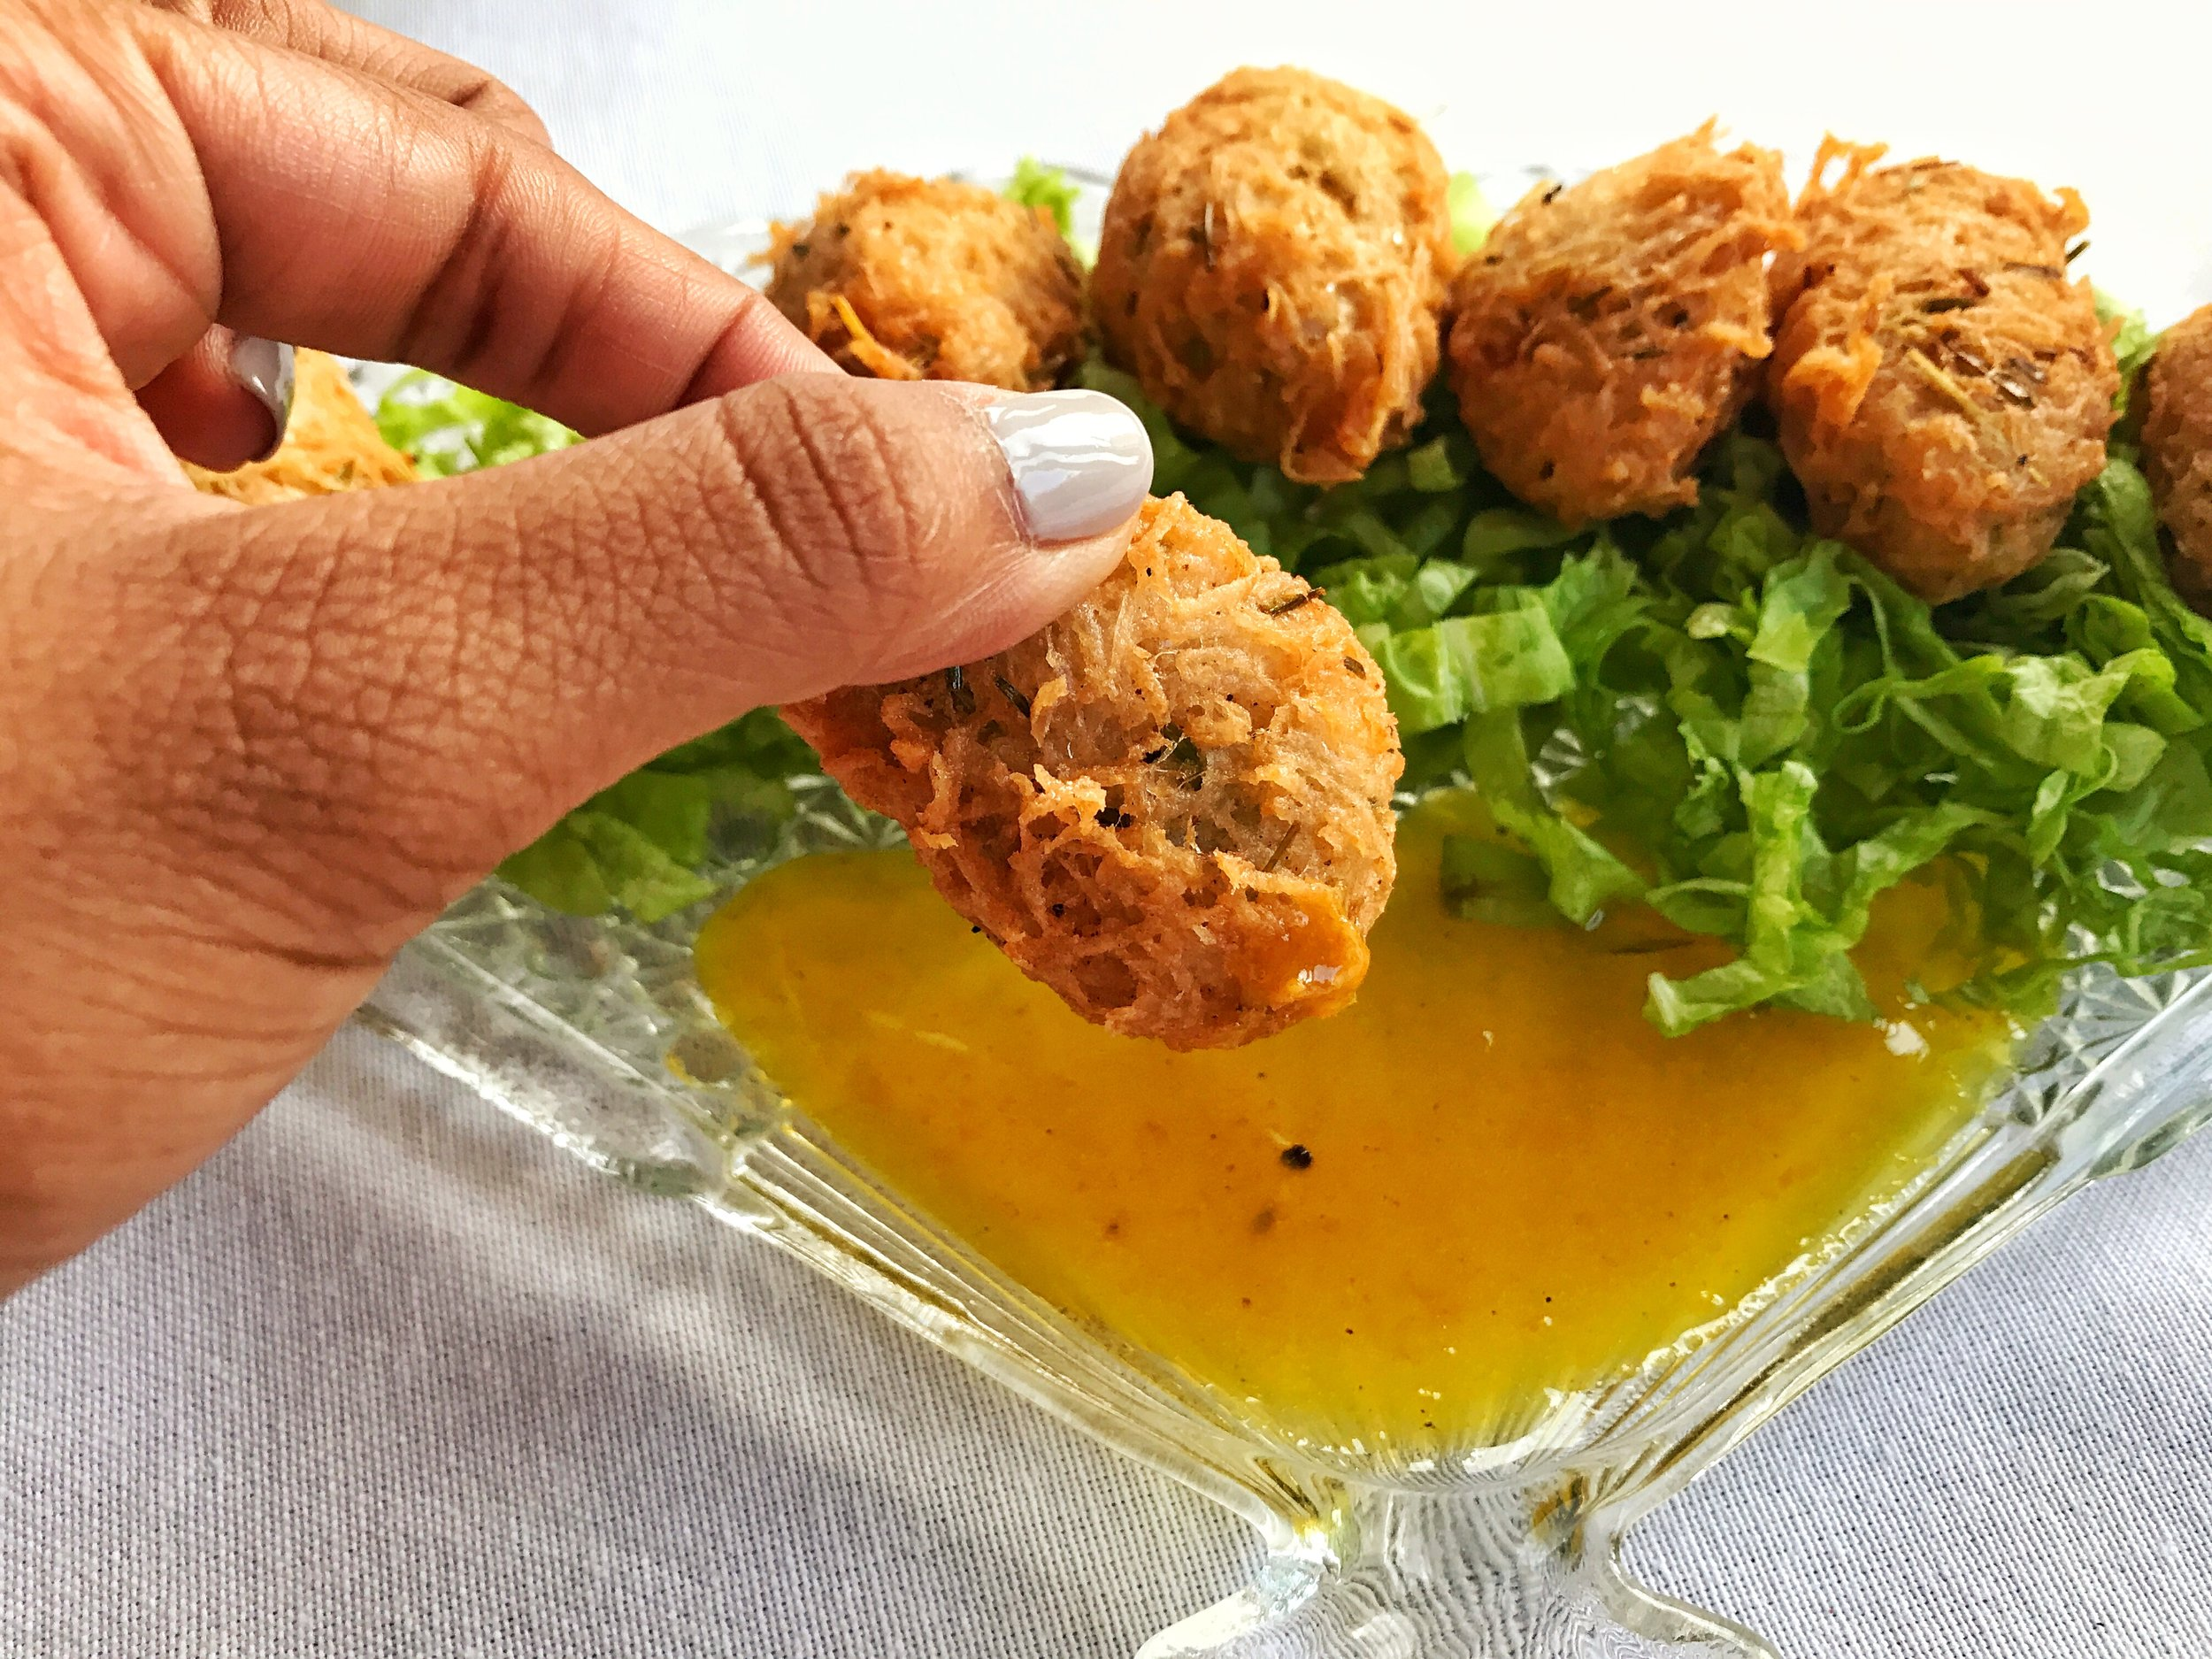 Mixed seafood fritters with a citrus glaze sauce for dipping